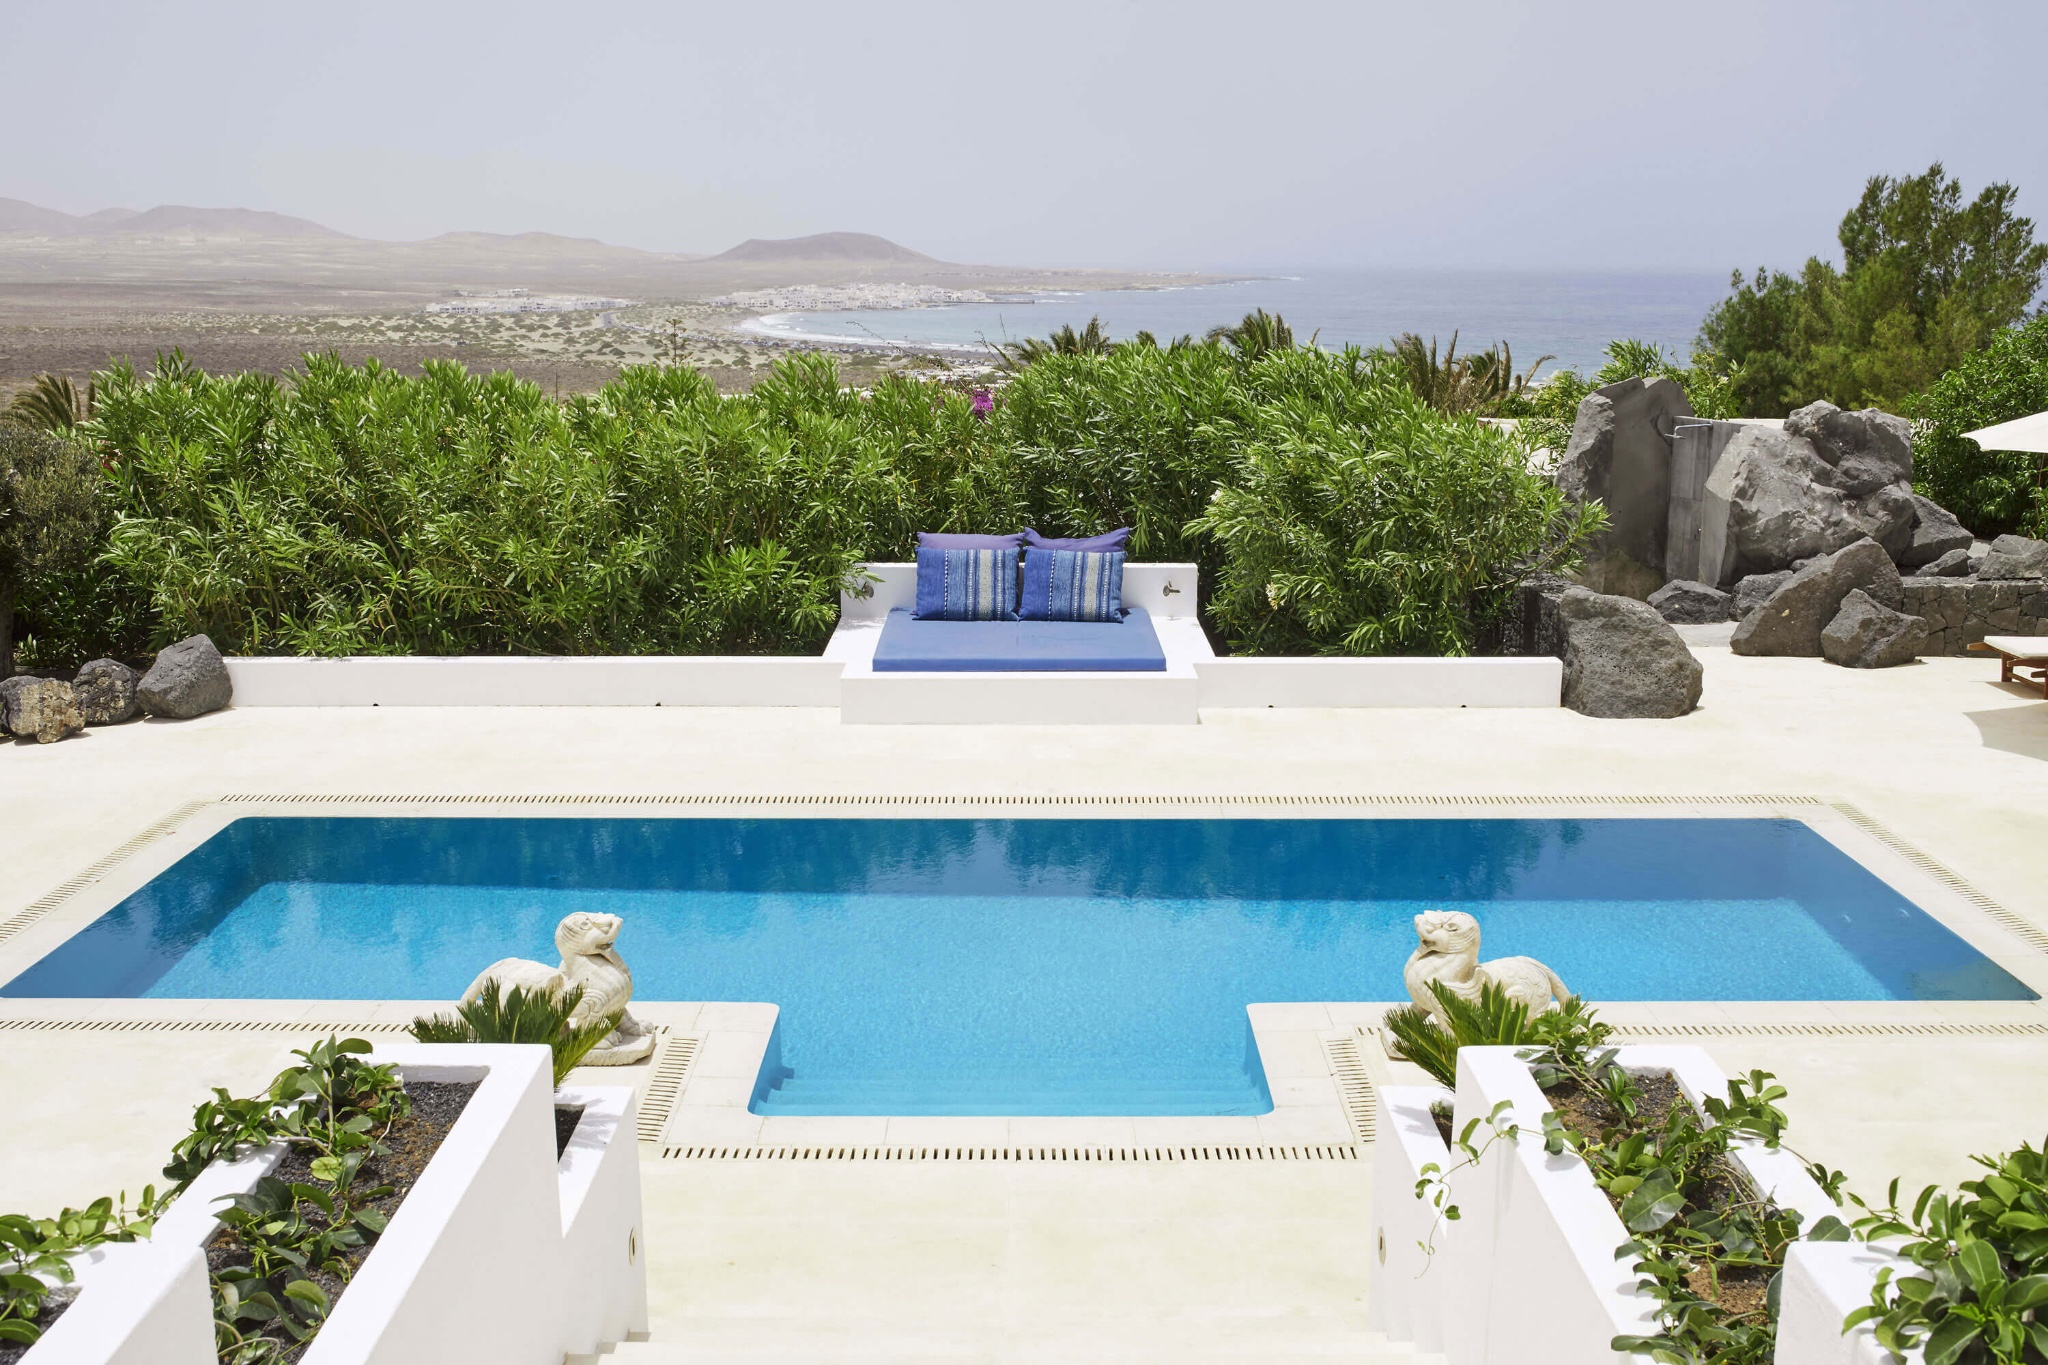 Fully furnished studio apartment beautifully decorated with a communal pool and stunning views to Playa Famara